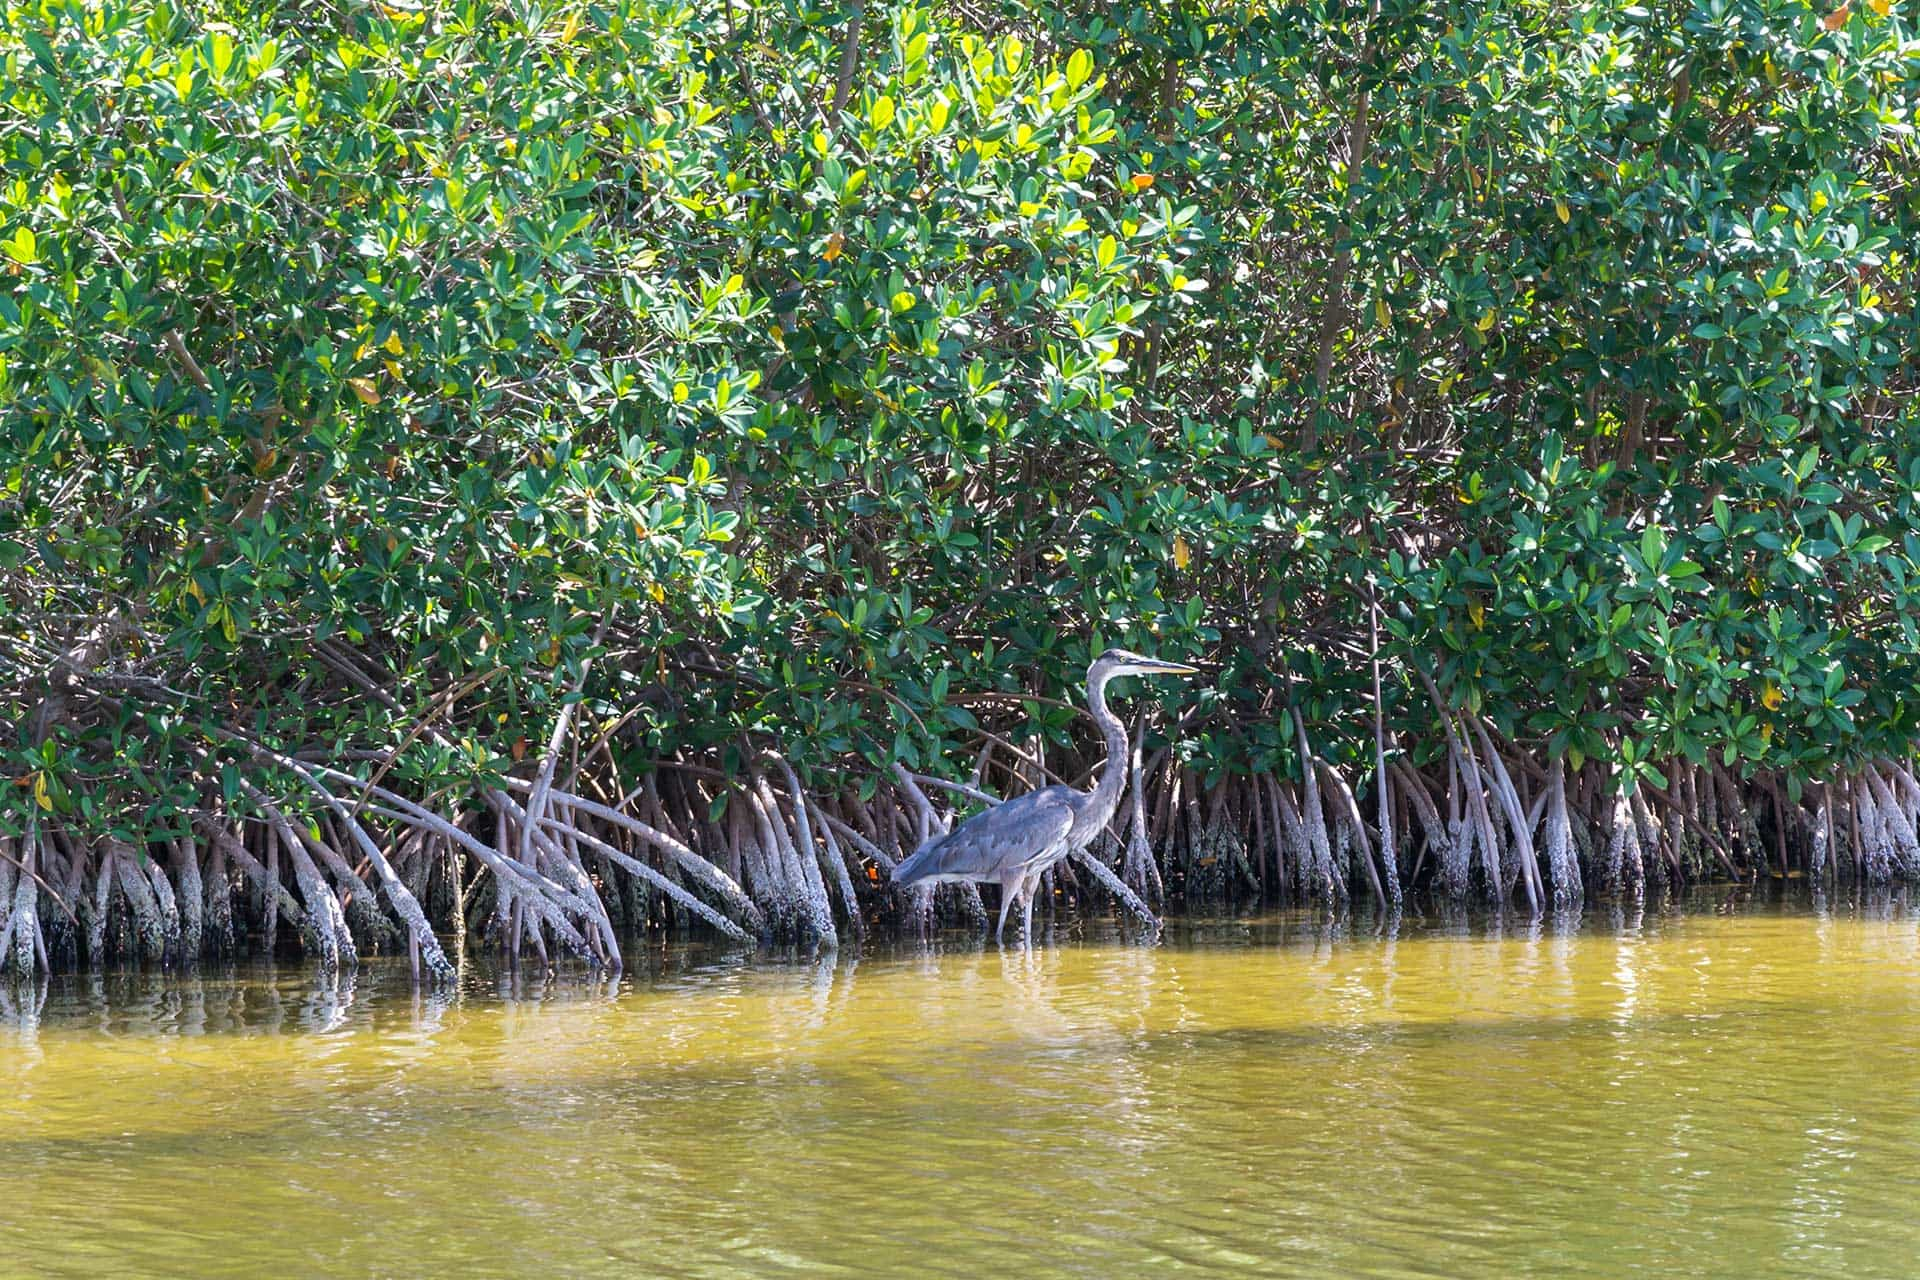 bird wading among mangrove trees